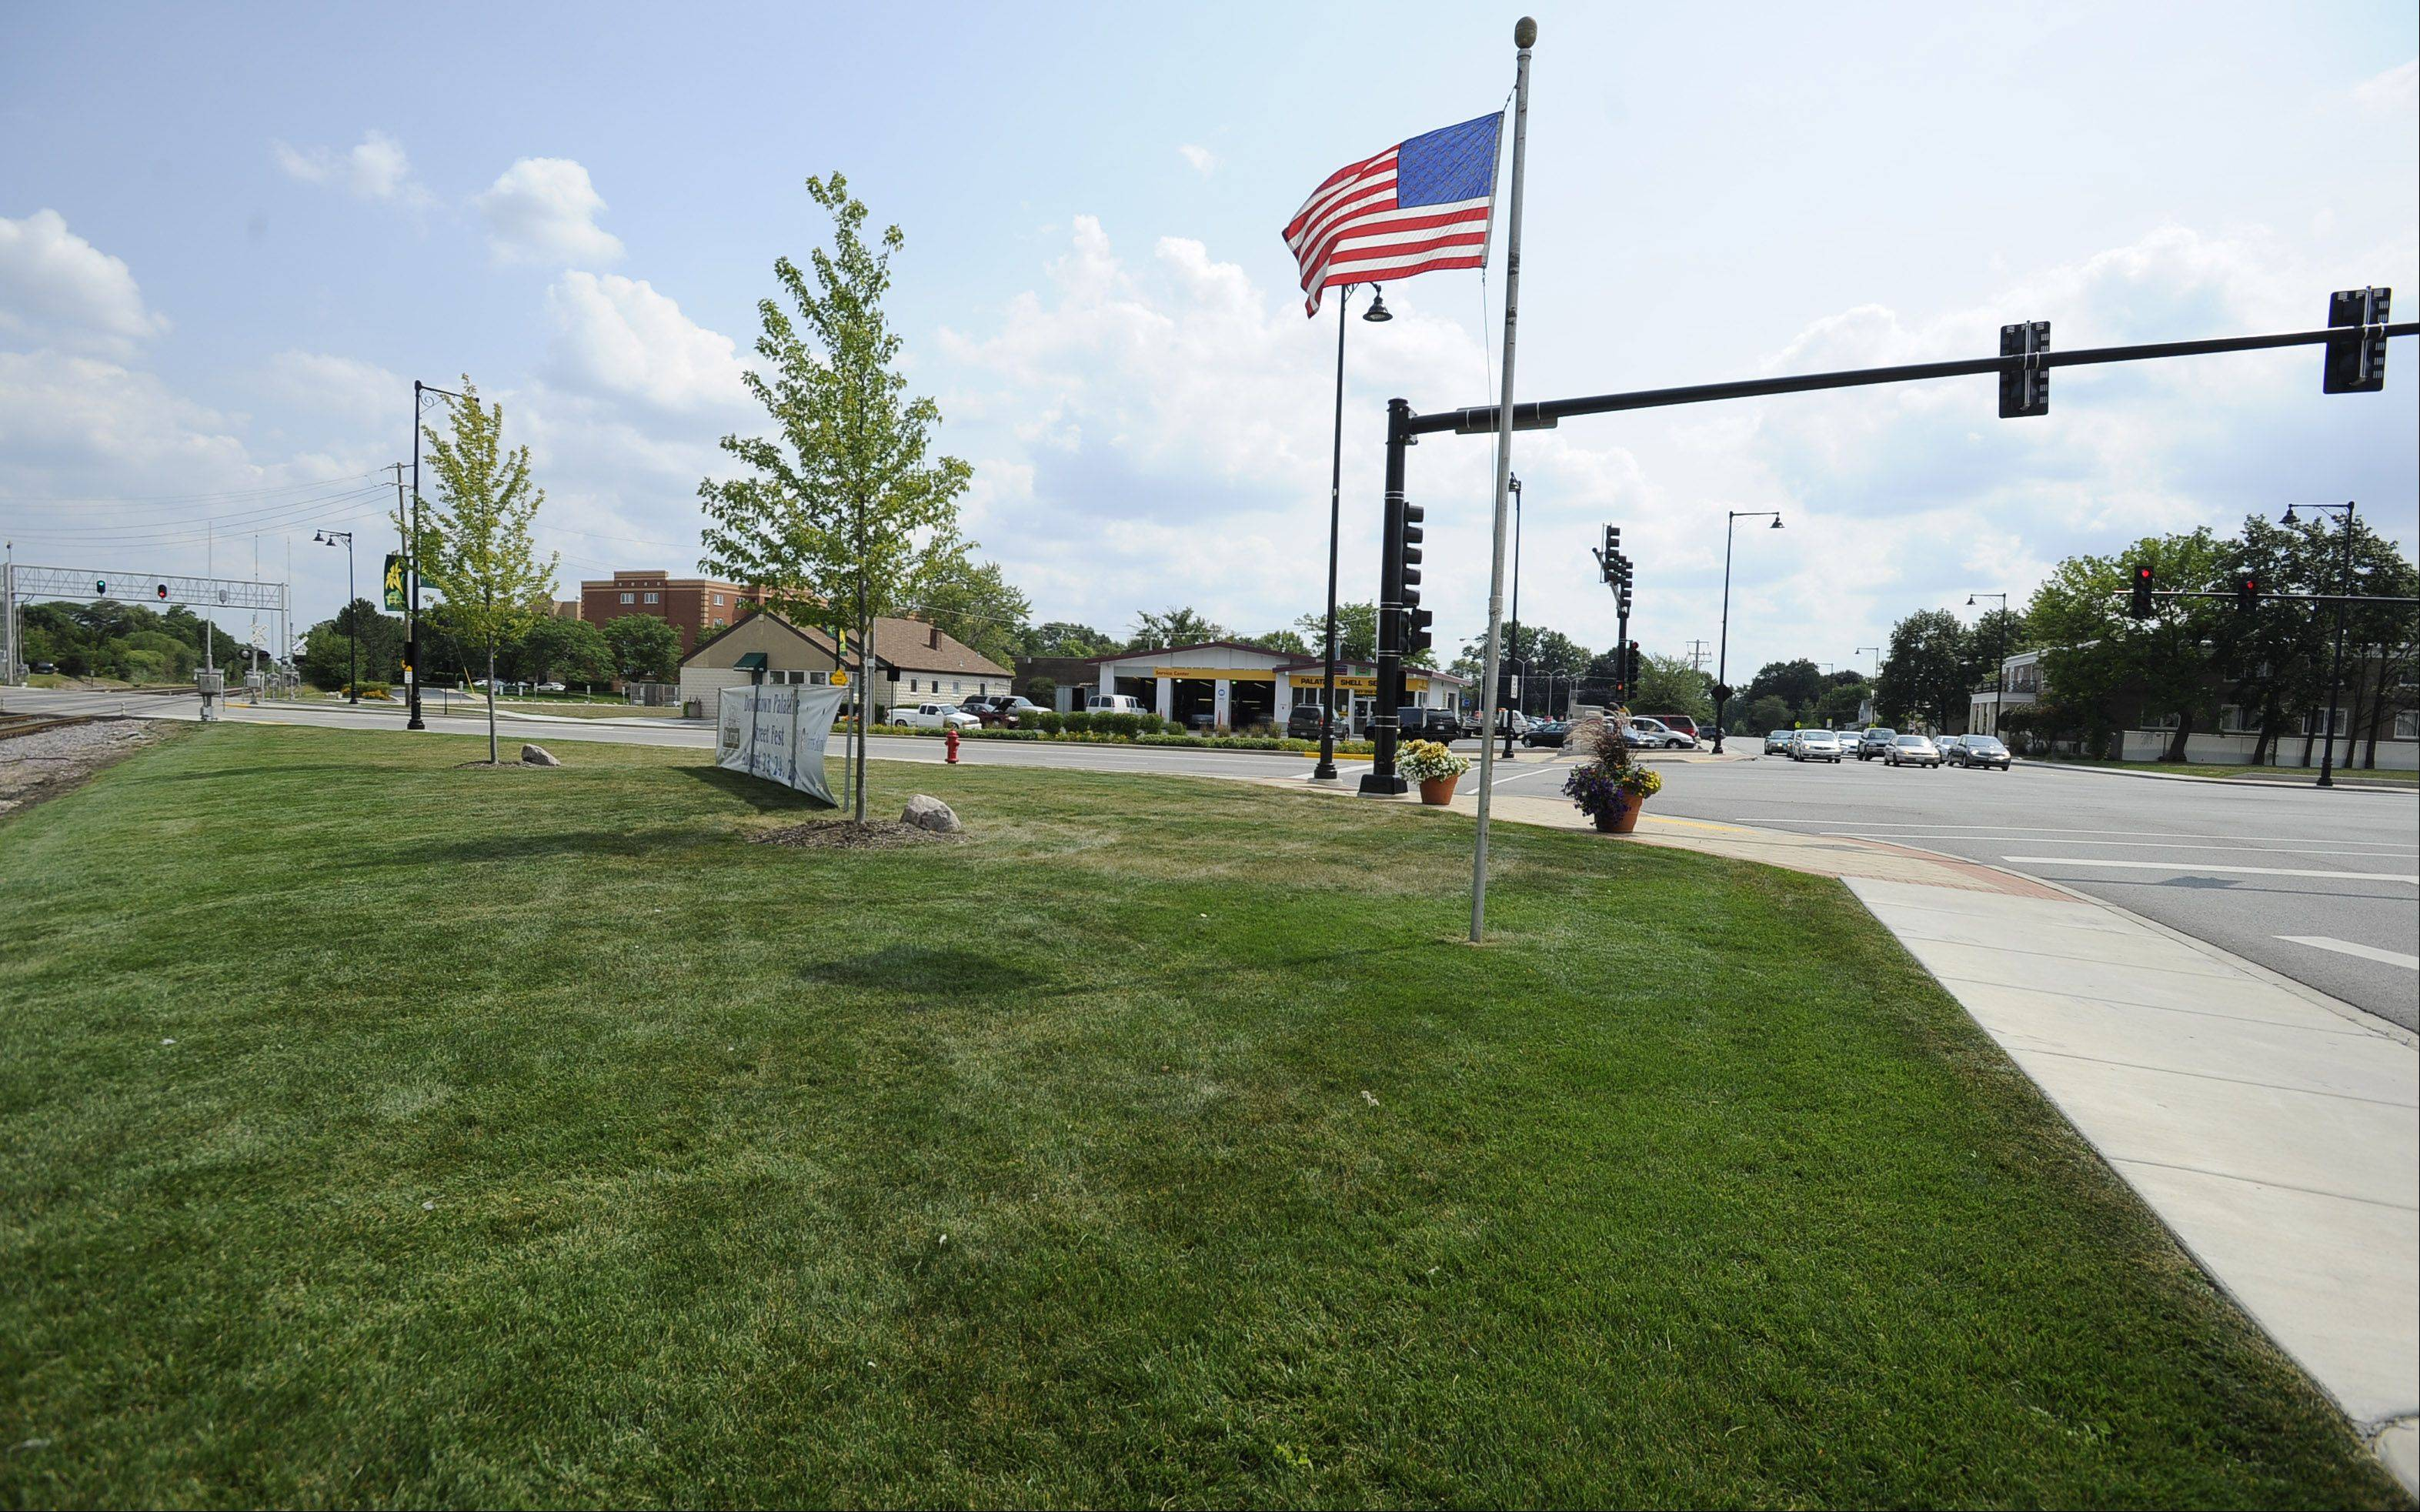 The Rotary Club of Palatine is celebrating its 50th anniversary by creating Rotary Plaza at the northeast corner of Palatine and Plum Grove roads. It will include a community electronic sign, benches, landscaping and personalized bricks.